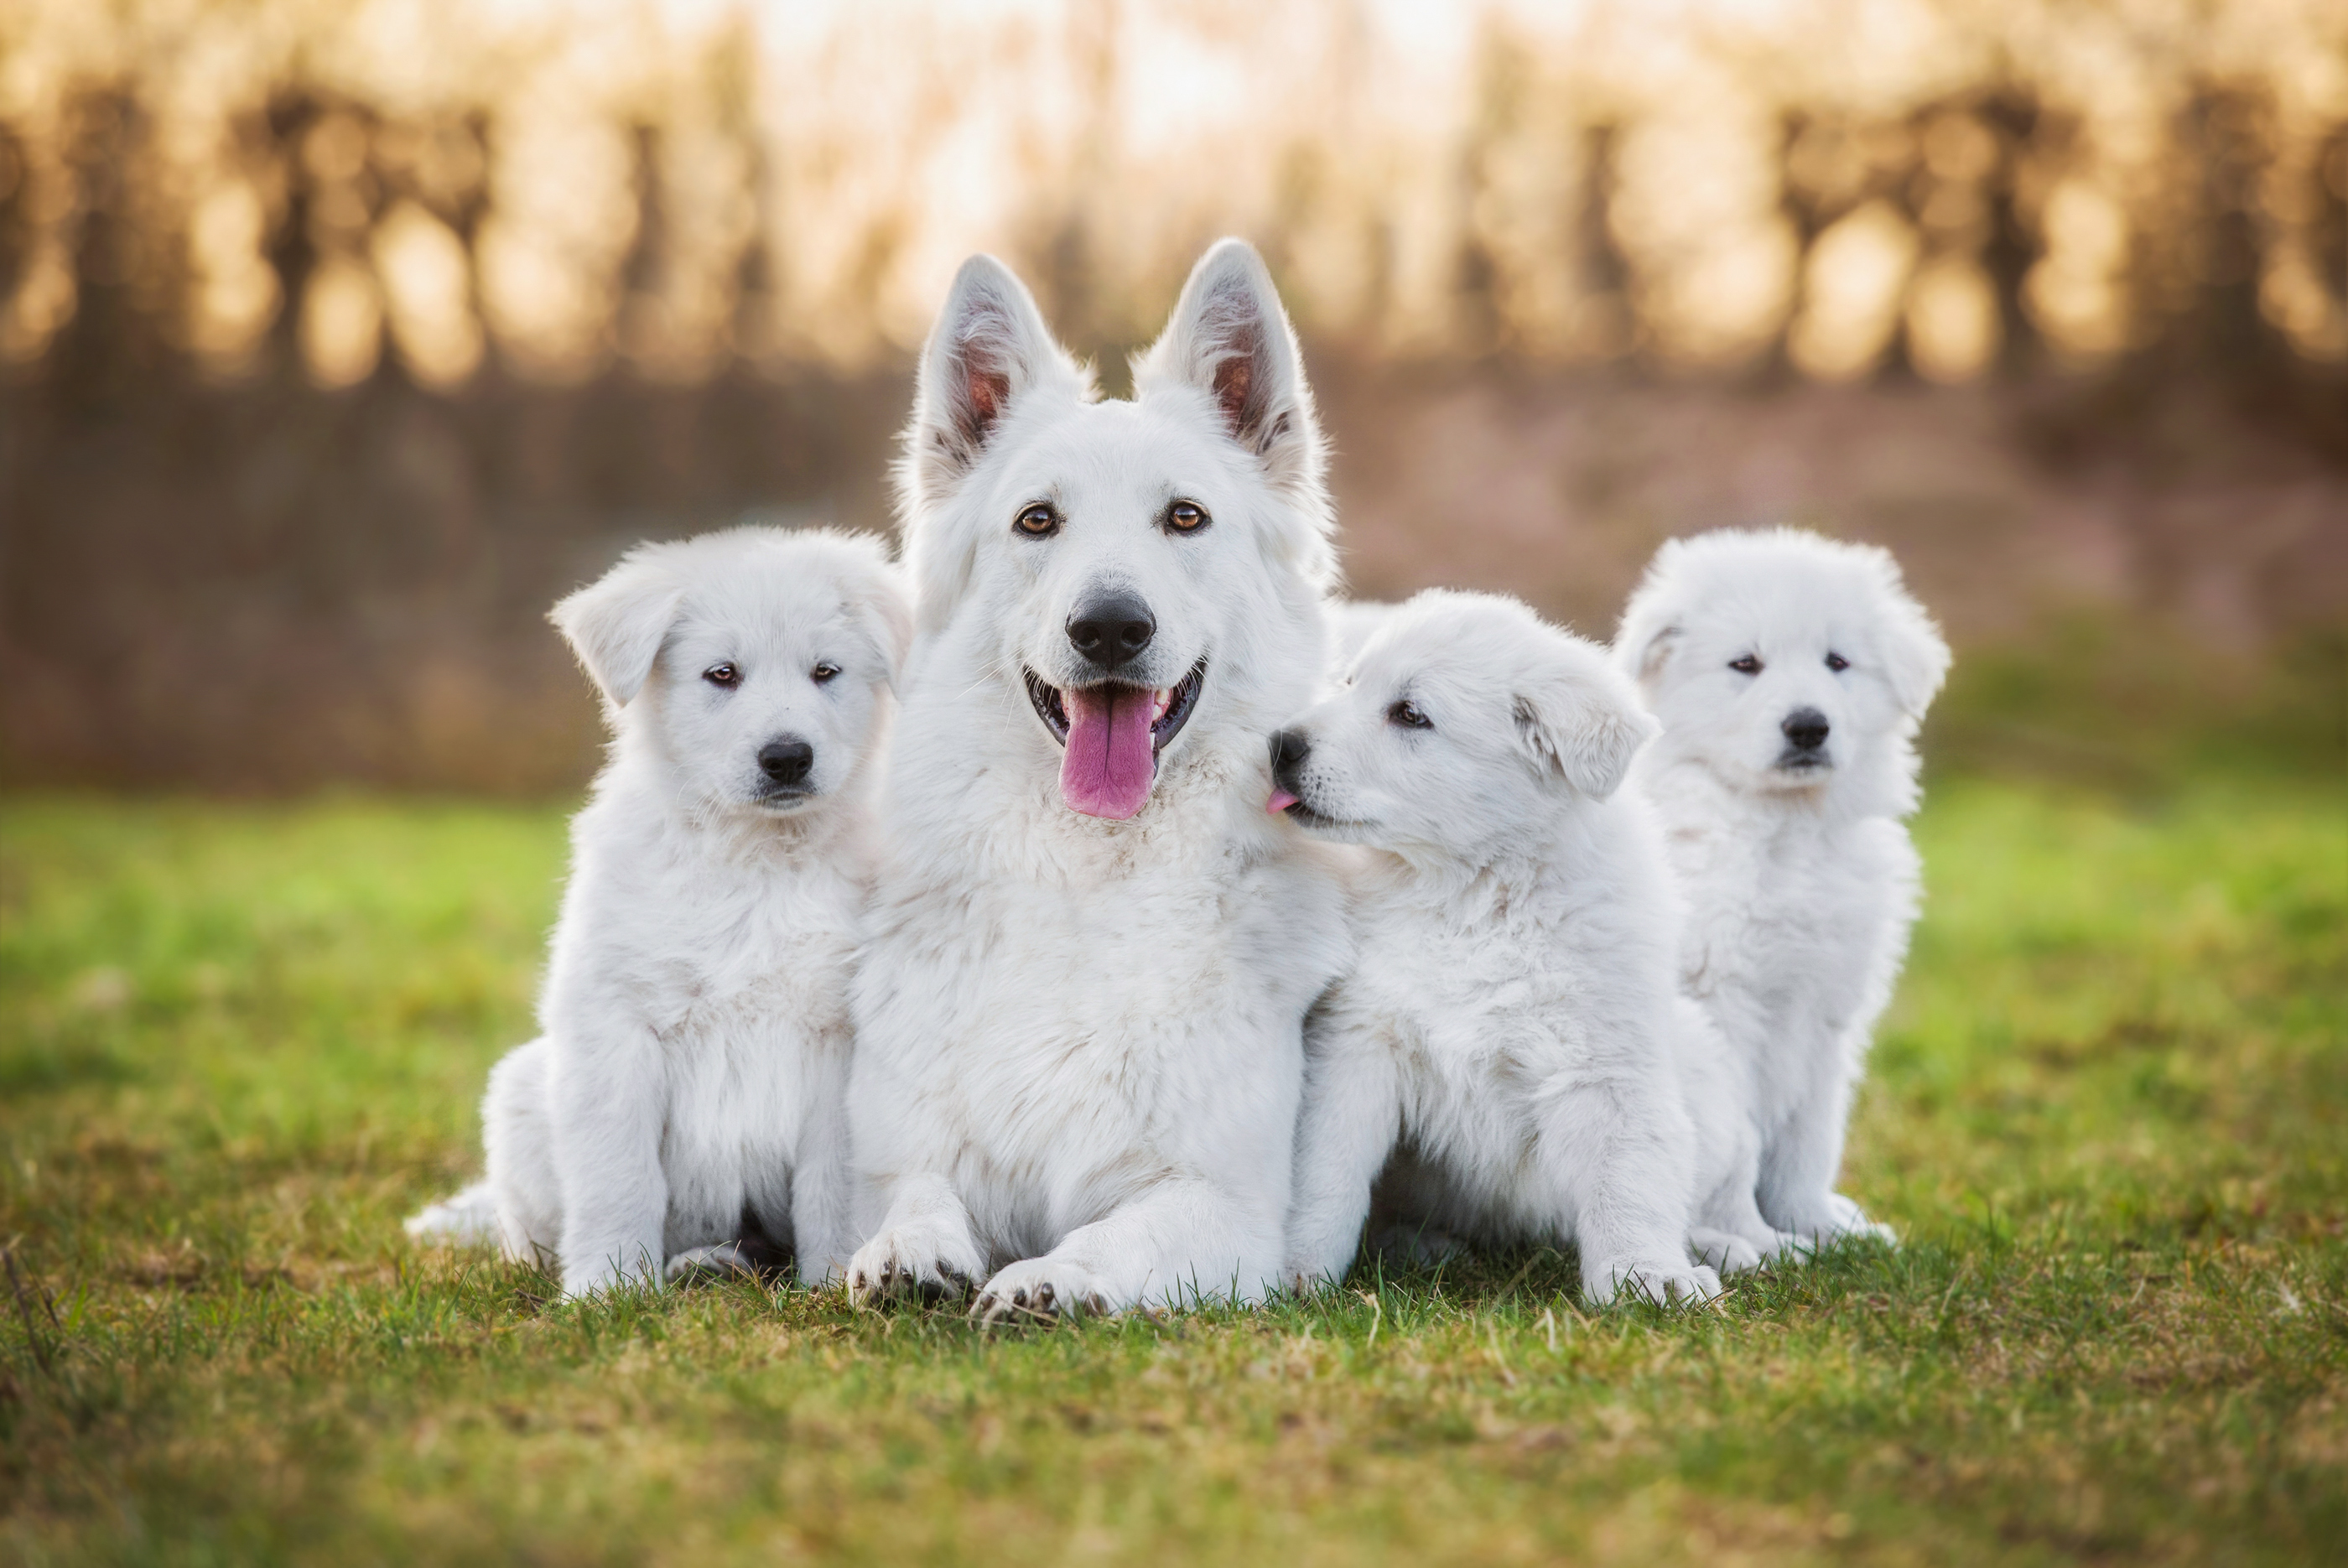 Adult dog with puppies